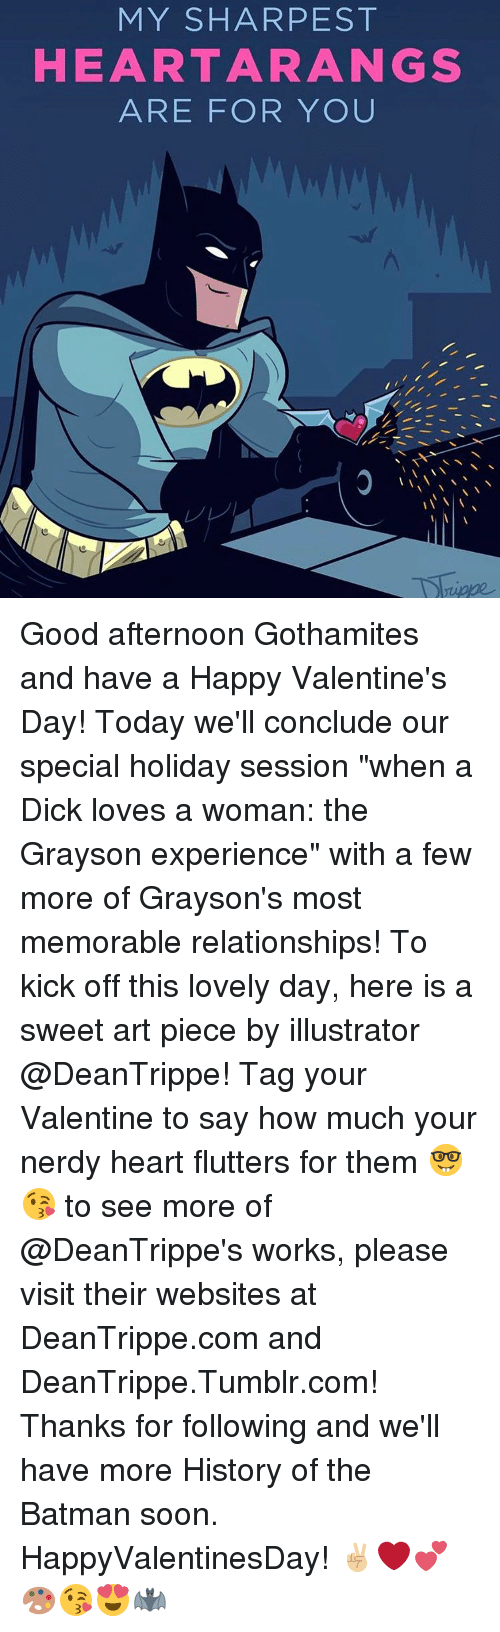 """Memorals: MY SHAR PEST  HEART ARA NGS  ARE FOR YOU Good afternoon Gothamites and have a Happy Valentine's Day! Today we'll conclude our special holiday session """"when a Dick loves a woman: the Grayson experience"""" with a few more of Grayson's most memorable relationships! To kick off this lovely day, here is a sweet art piece by illustrator @DeanTrippe! Tag your Valentine to say how much your nerdy heart flutters for them 🤓😘 to see more of @DeanTrippe's works, please visit their websites at DeanTrippe.com and DeanTrippe.Tumblr.com! Thanks for following and we'll have more History of the Batman soon. HappyValentinesDay! ✌🏼❤️💕🎨😘😍🦇"""